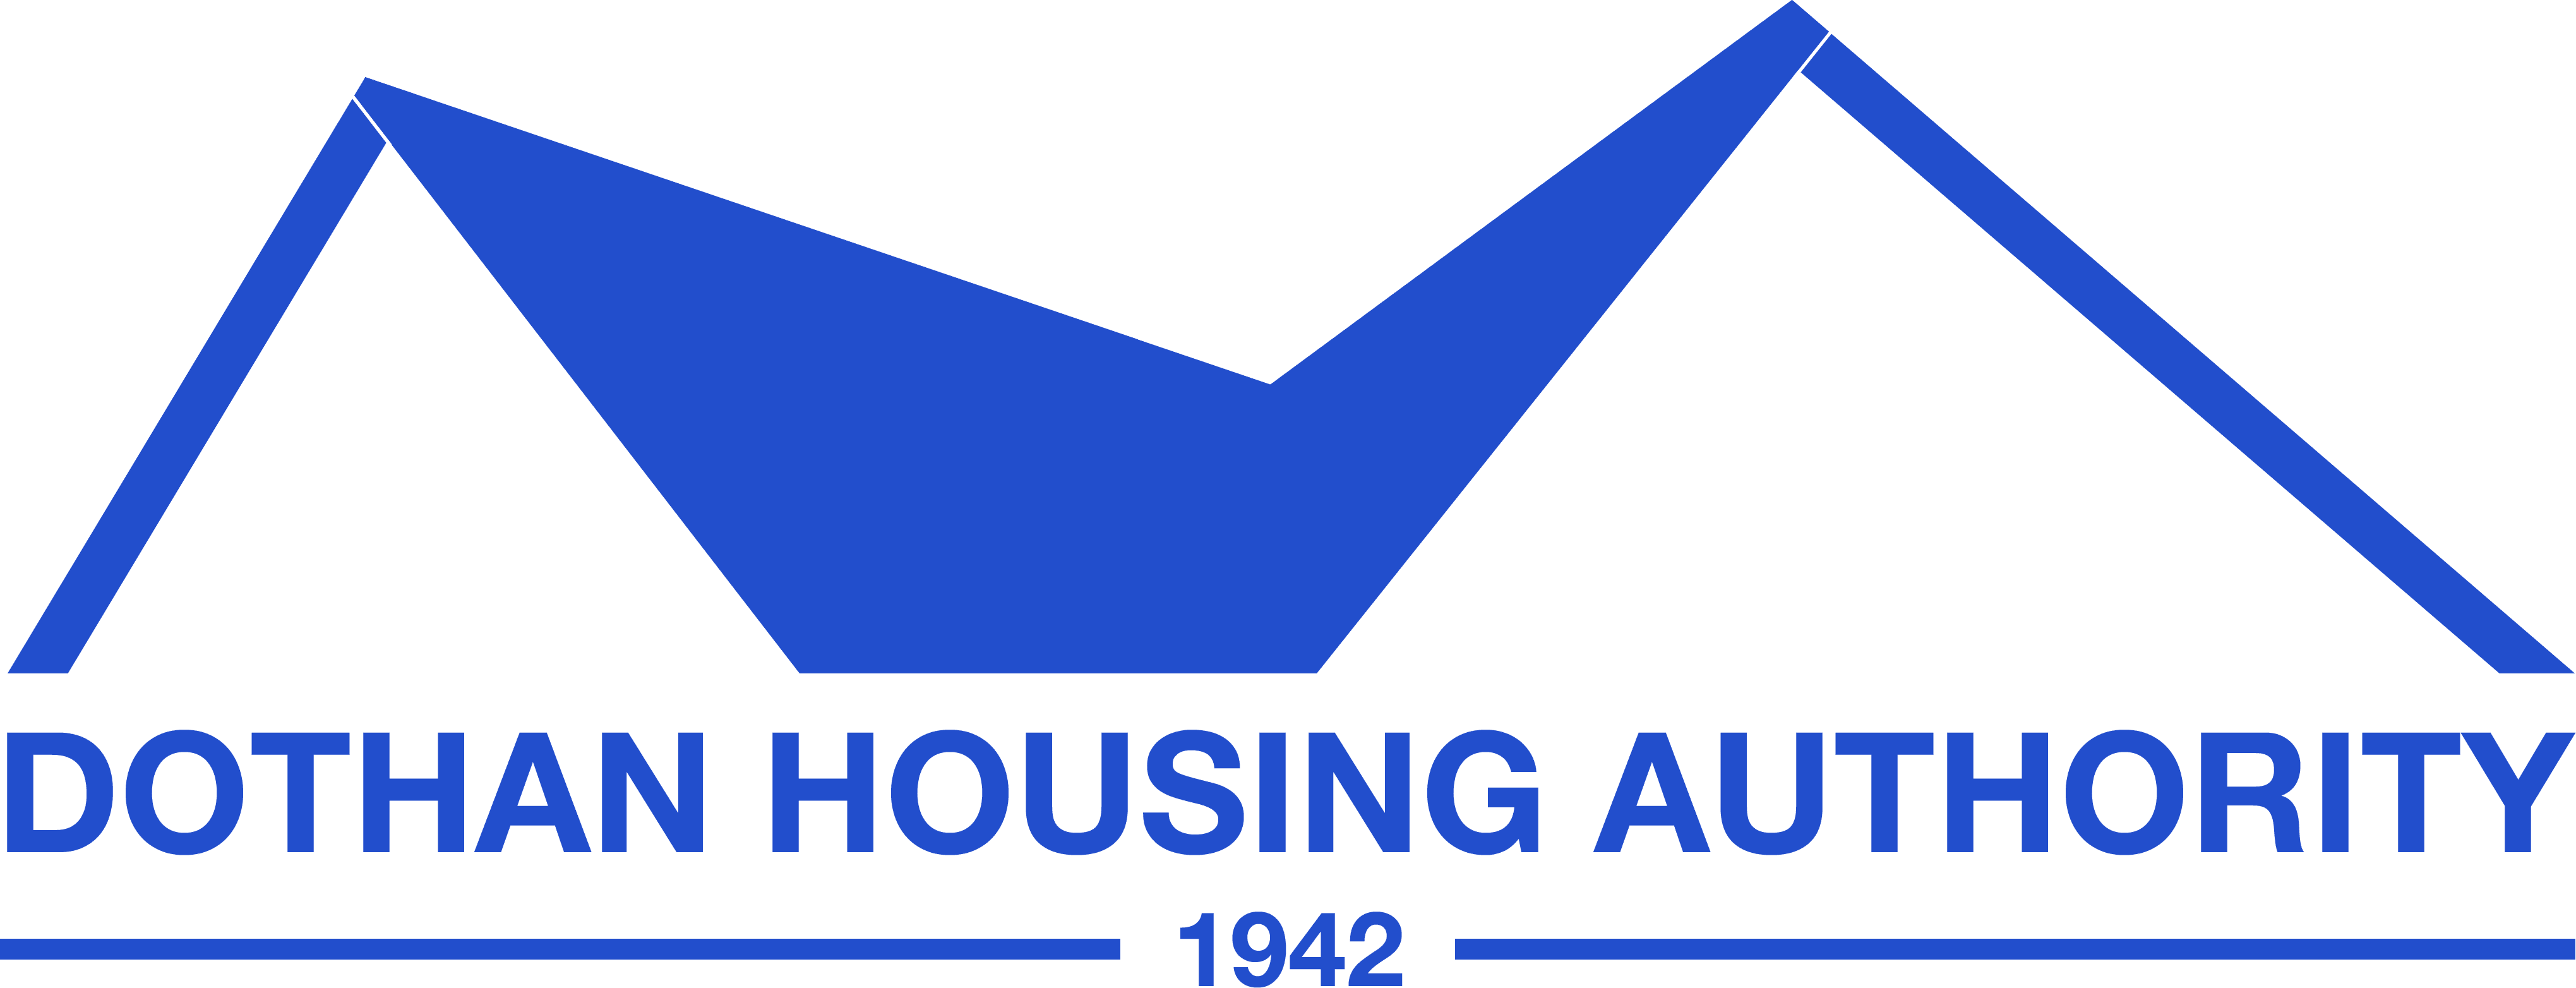 Housing Authority of Dothan Section 8